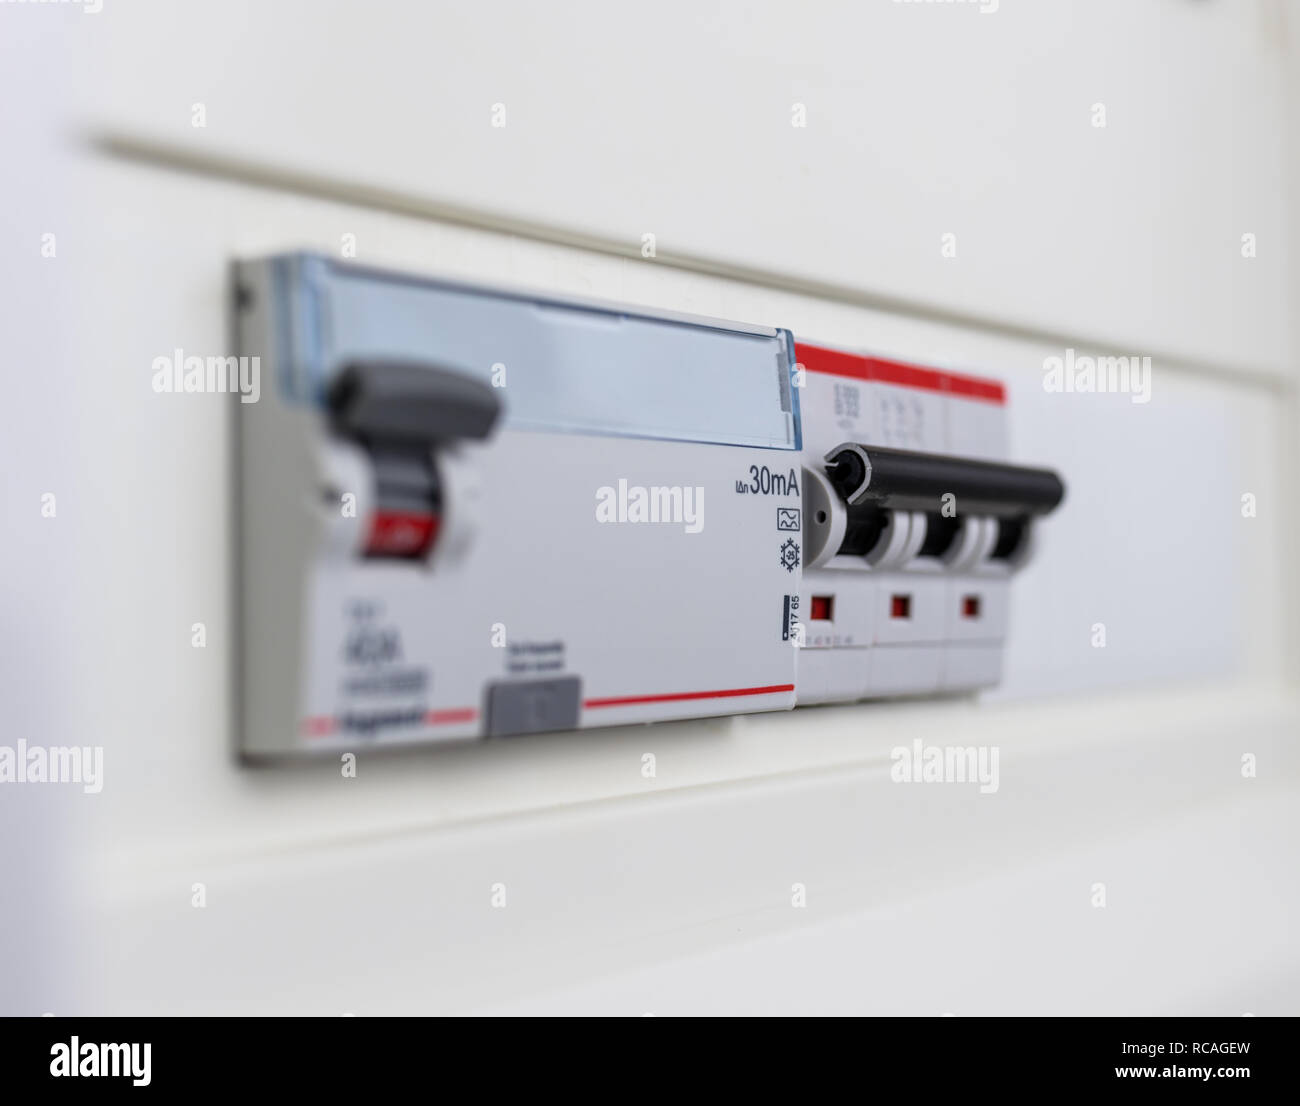 fuse box stock photos & fuse box stock images alamy old fuse box automatic circuit breakers in a fuse box power control panel stock image